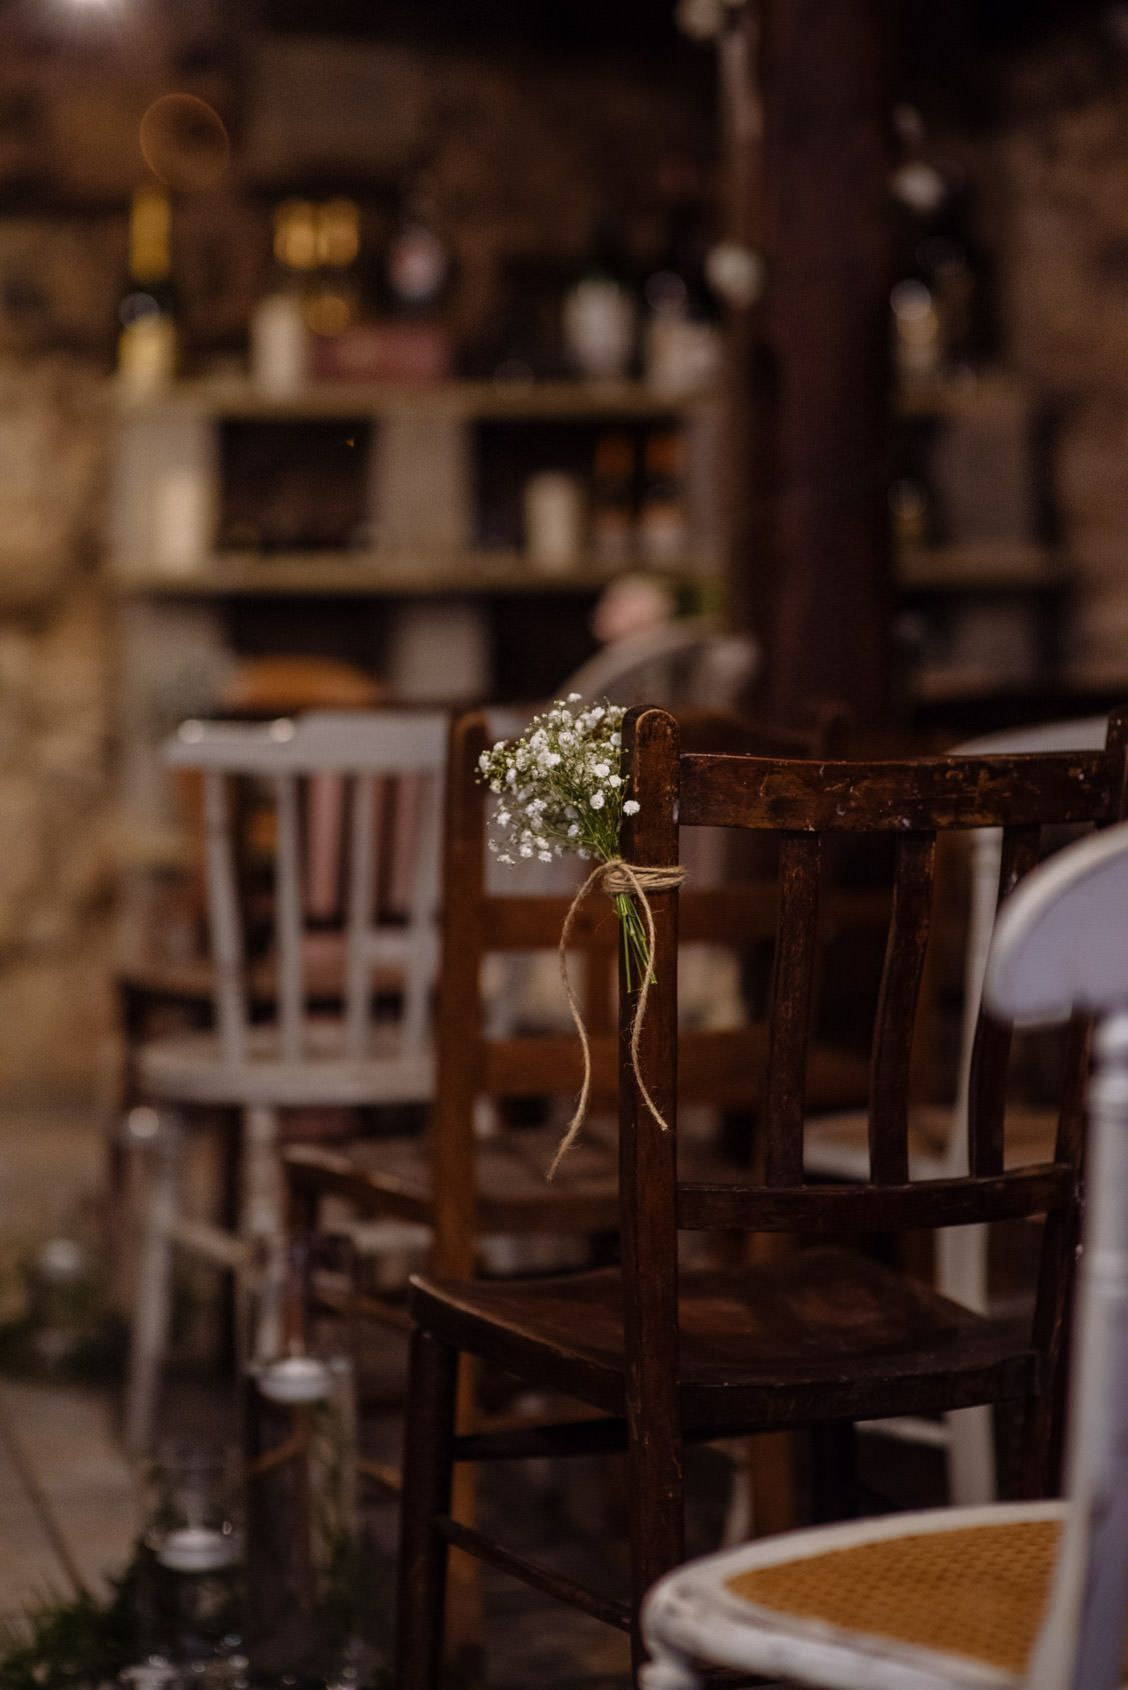 Barn wedding decoration ideas  Mis matched chairs for barn wedding ceremony with simple rustic